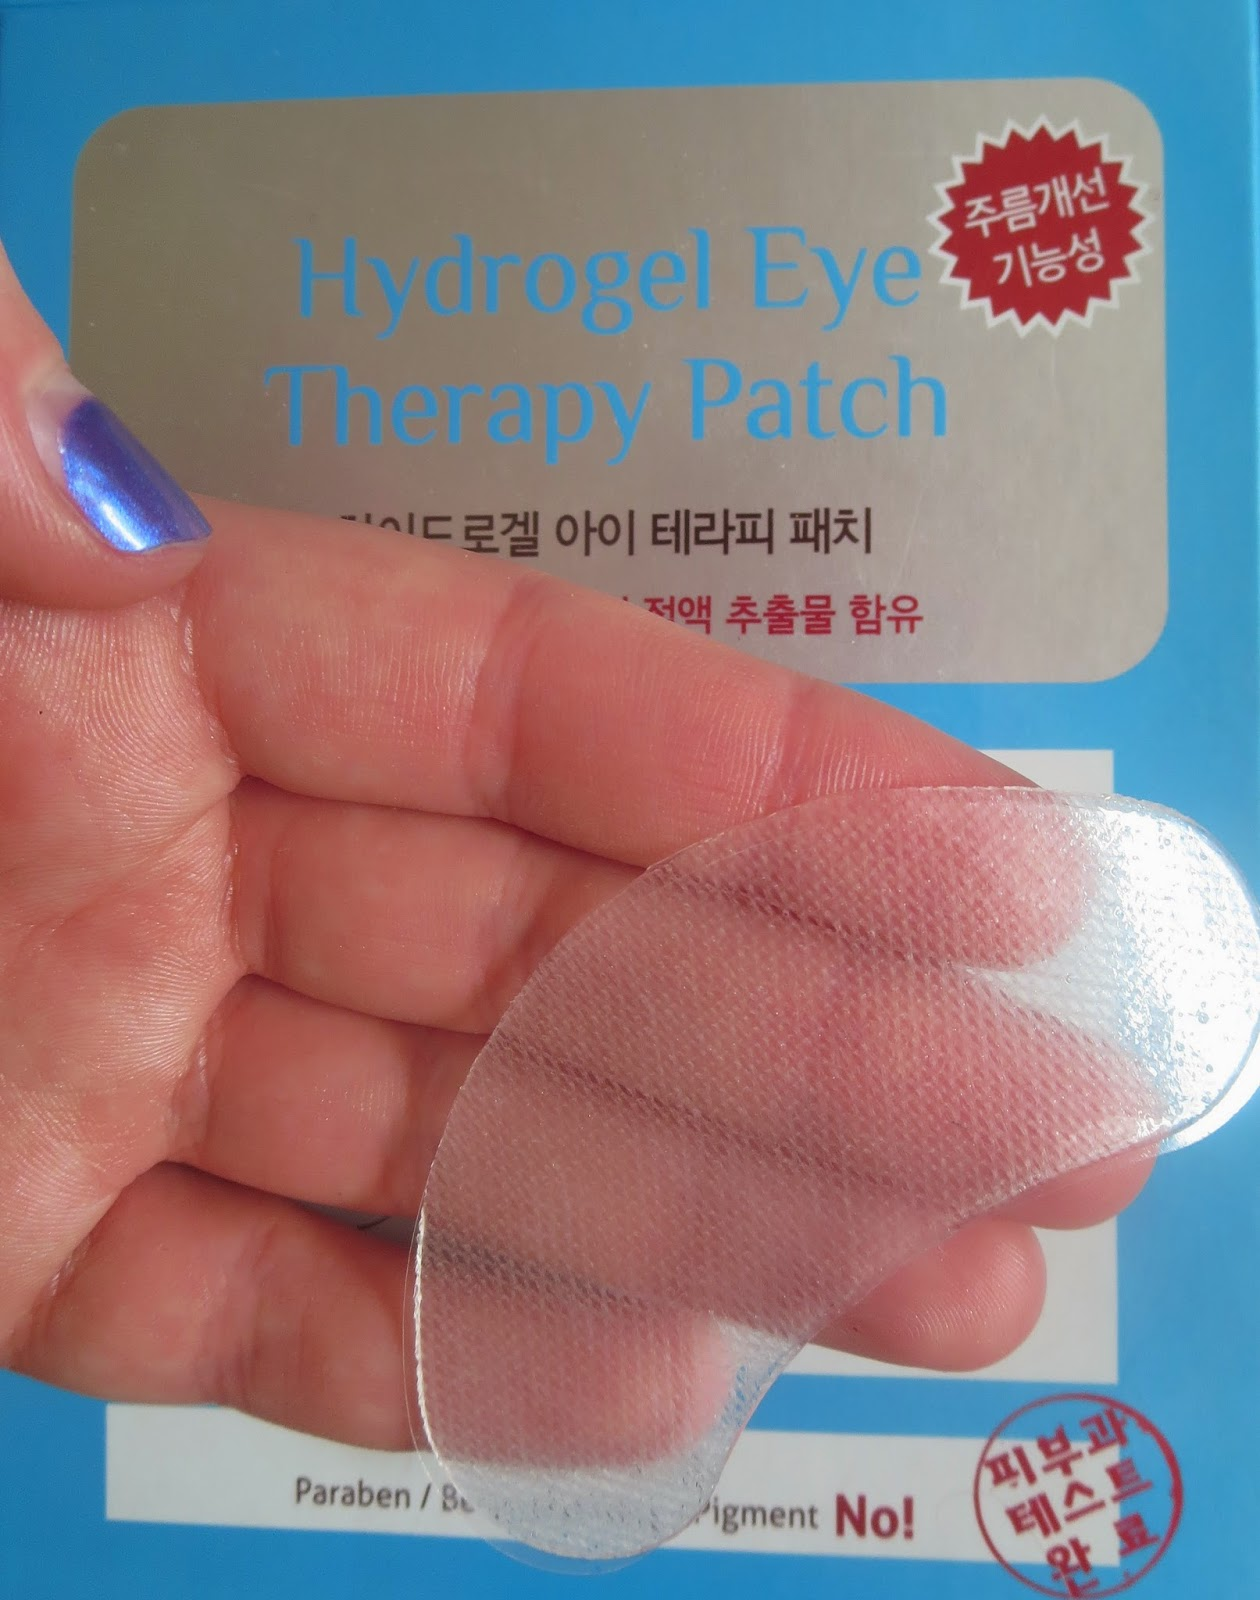 A picture of Leaders Hydrogel Eye Therapy Patch